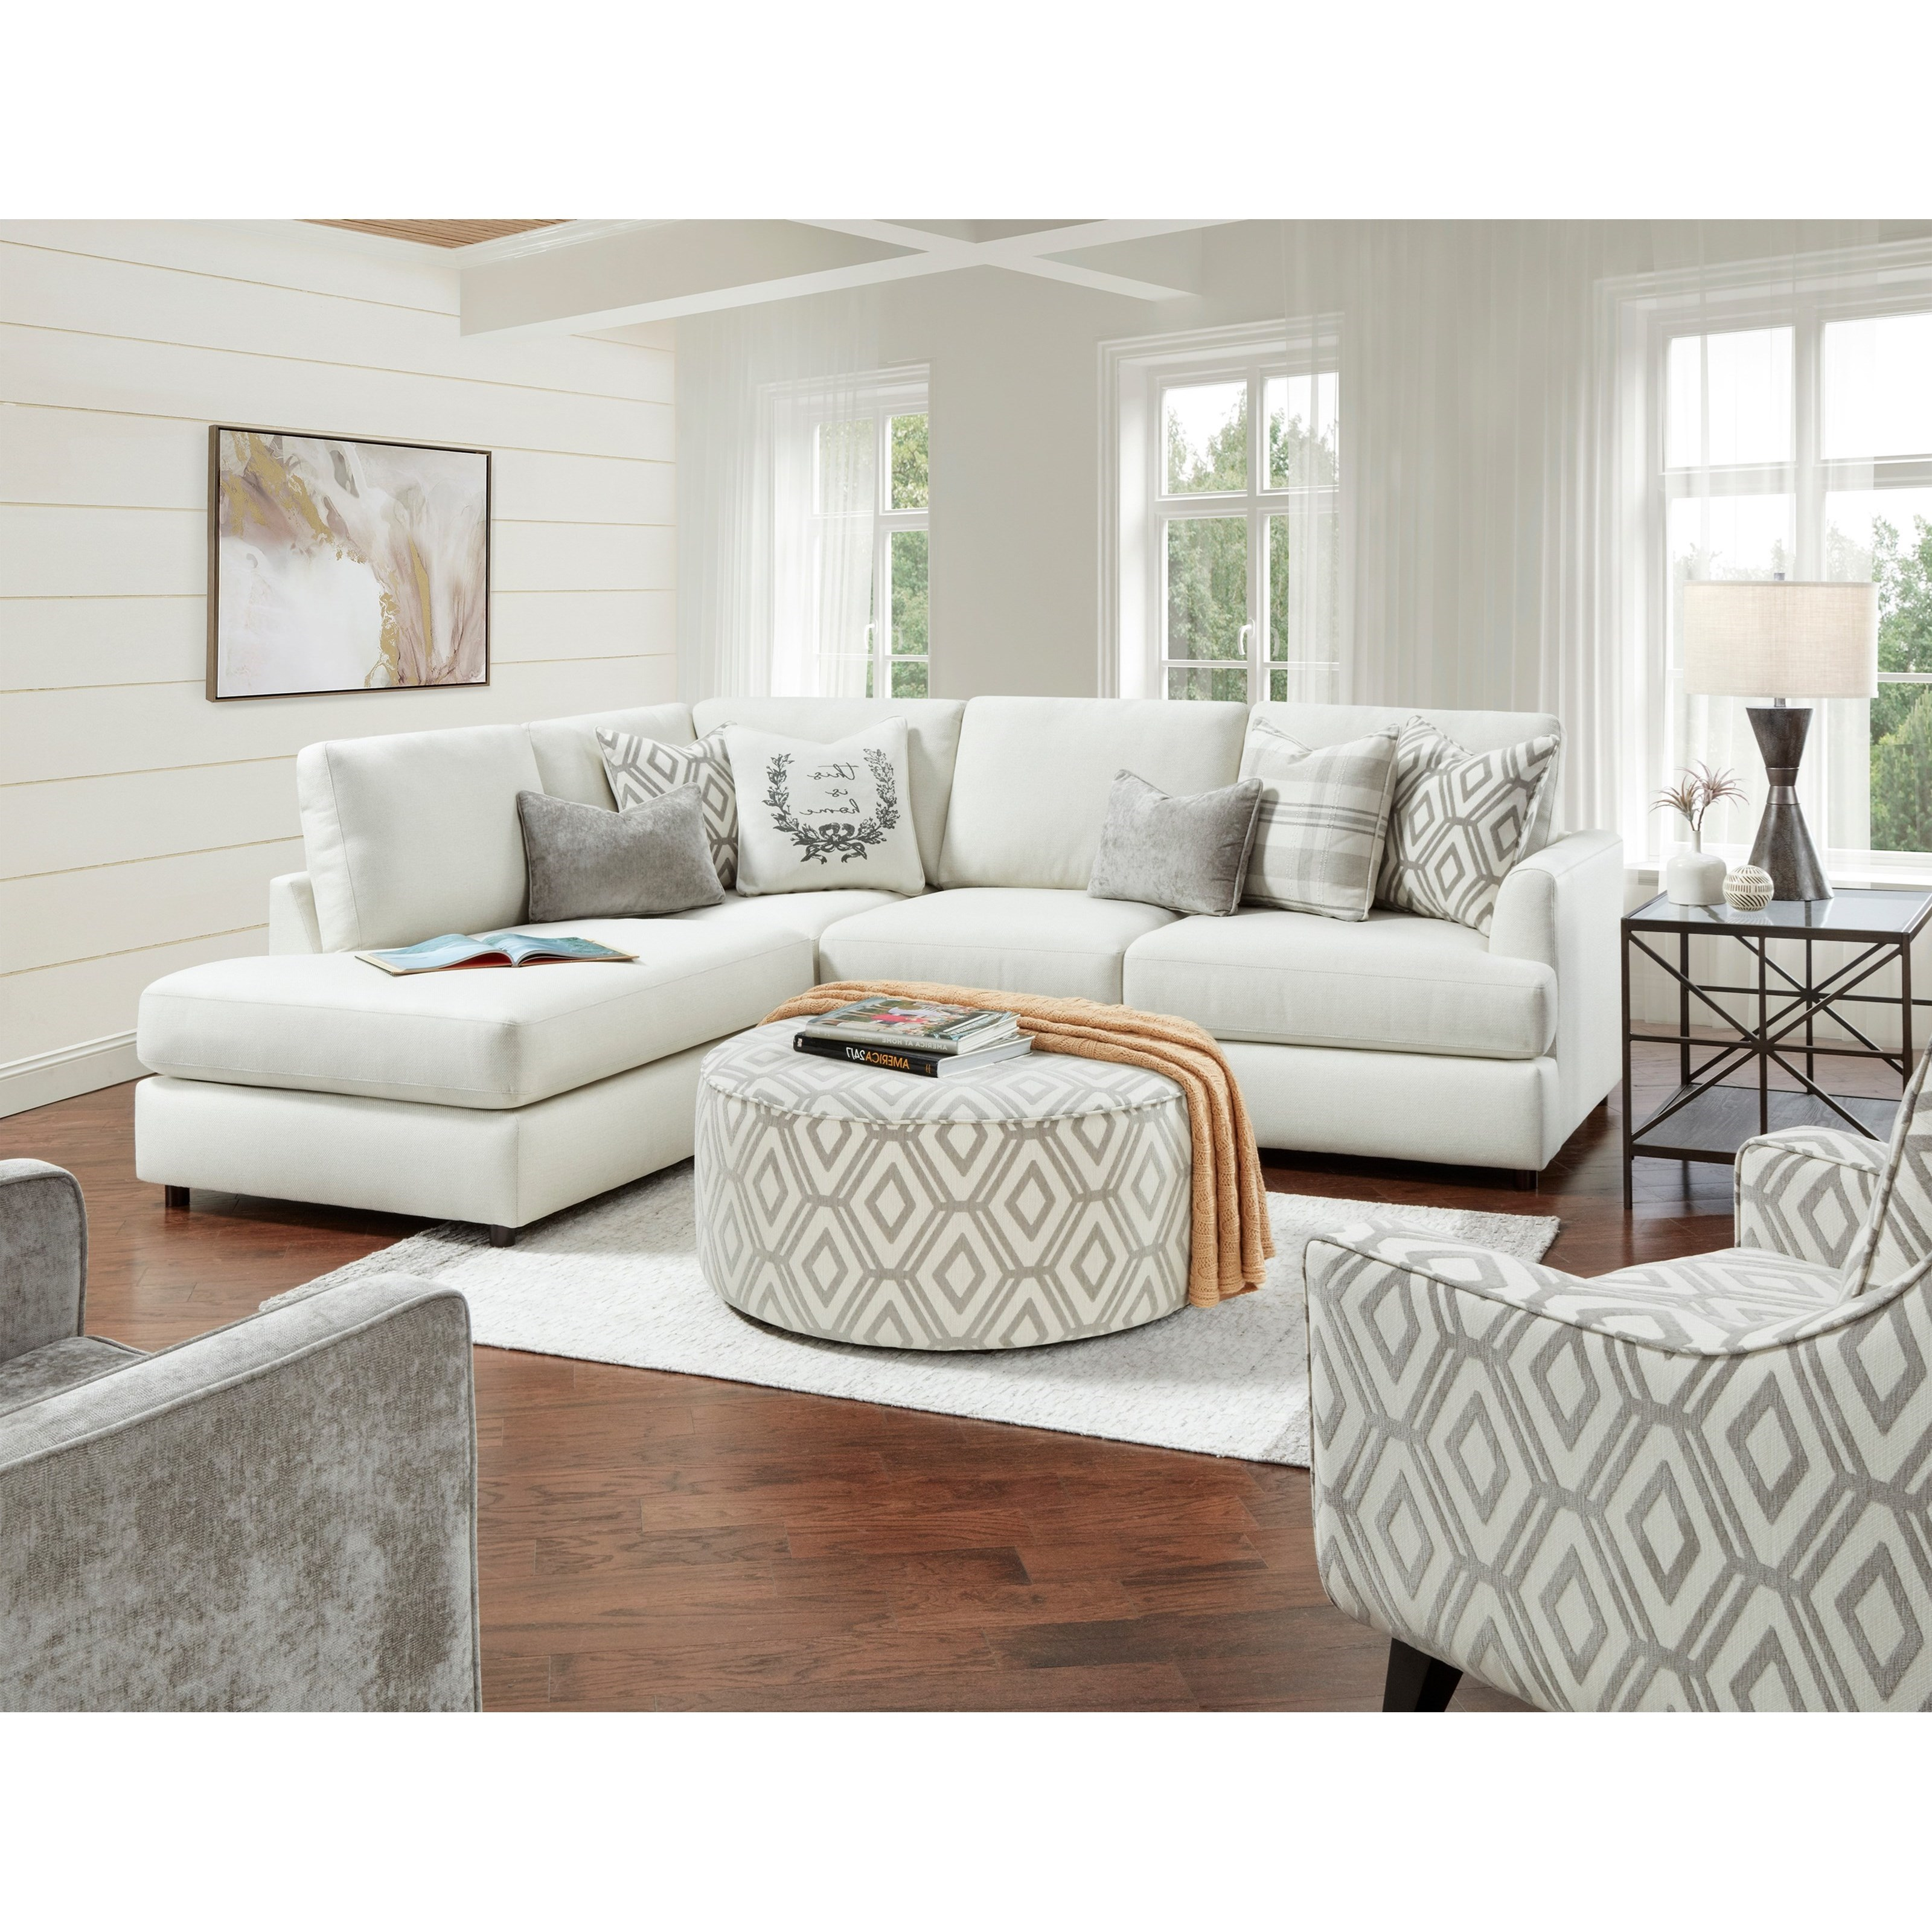 23-00 Living Room Group by Fusion Furniture at Miller Waldrop Furniture and Decor